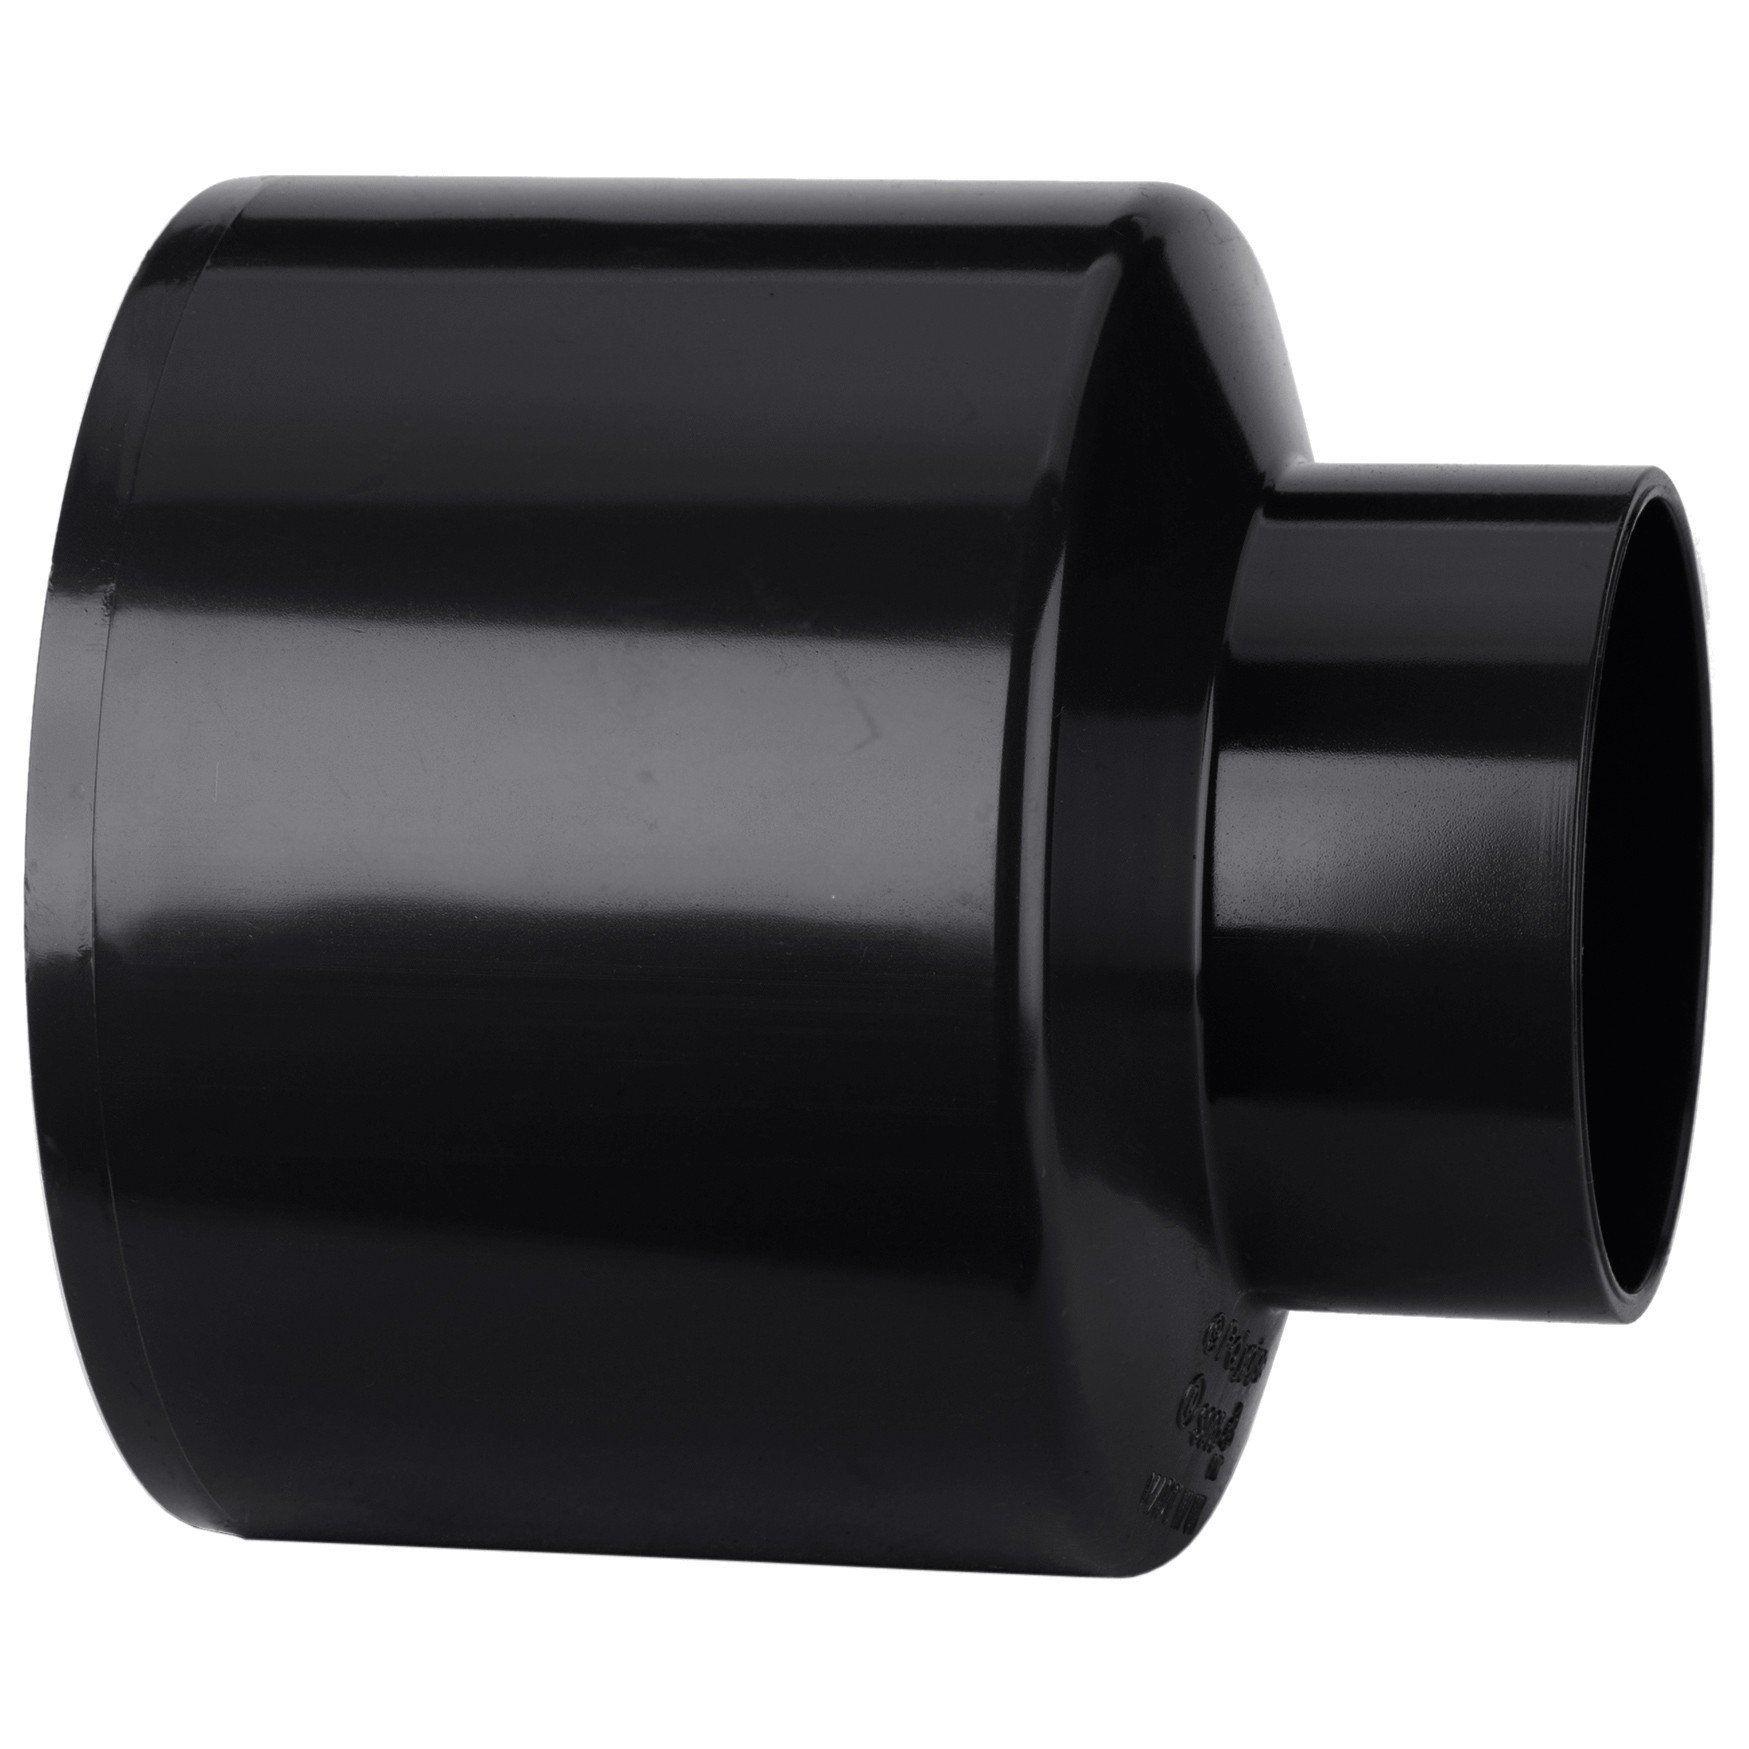 Polypipe 110mm Soil to Waste Reducer - Black